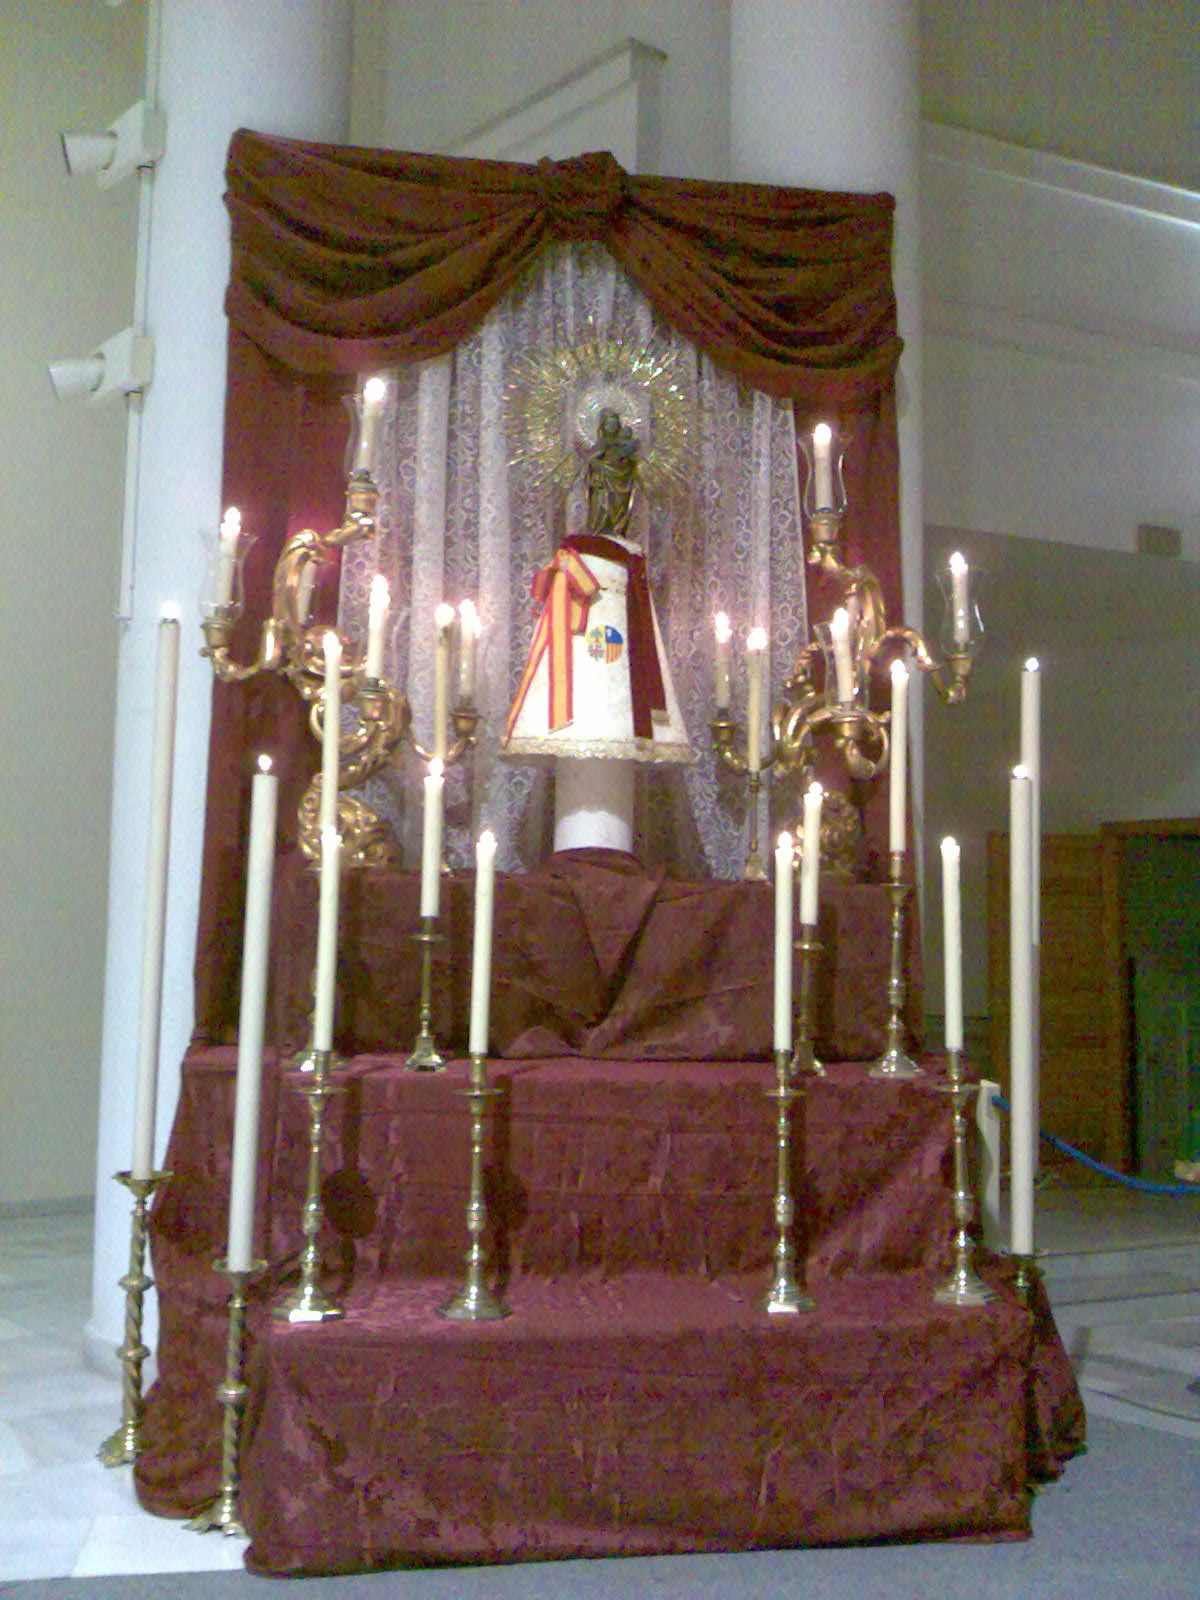 Triduo virgen del Pilar 2009